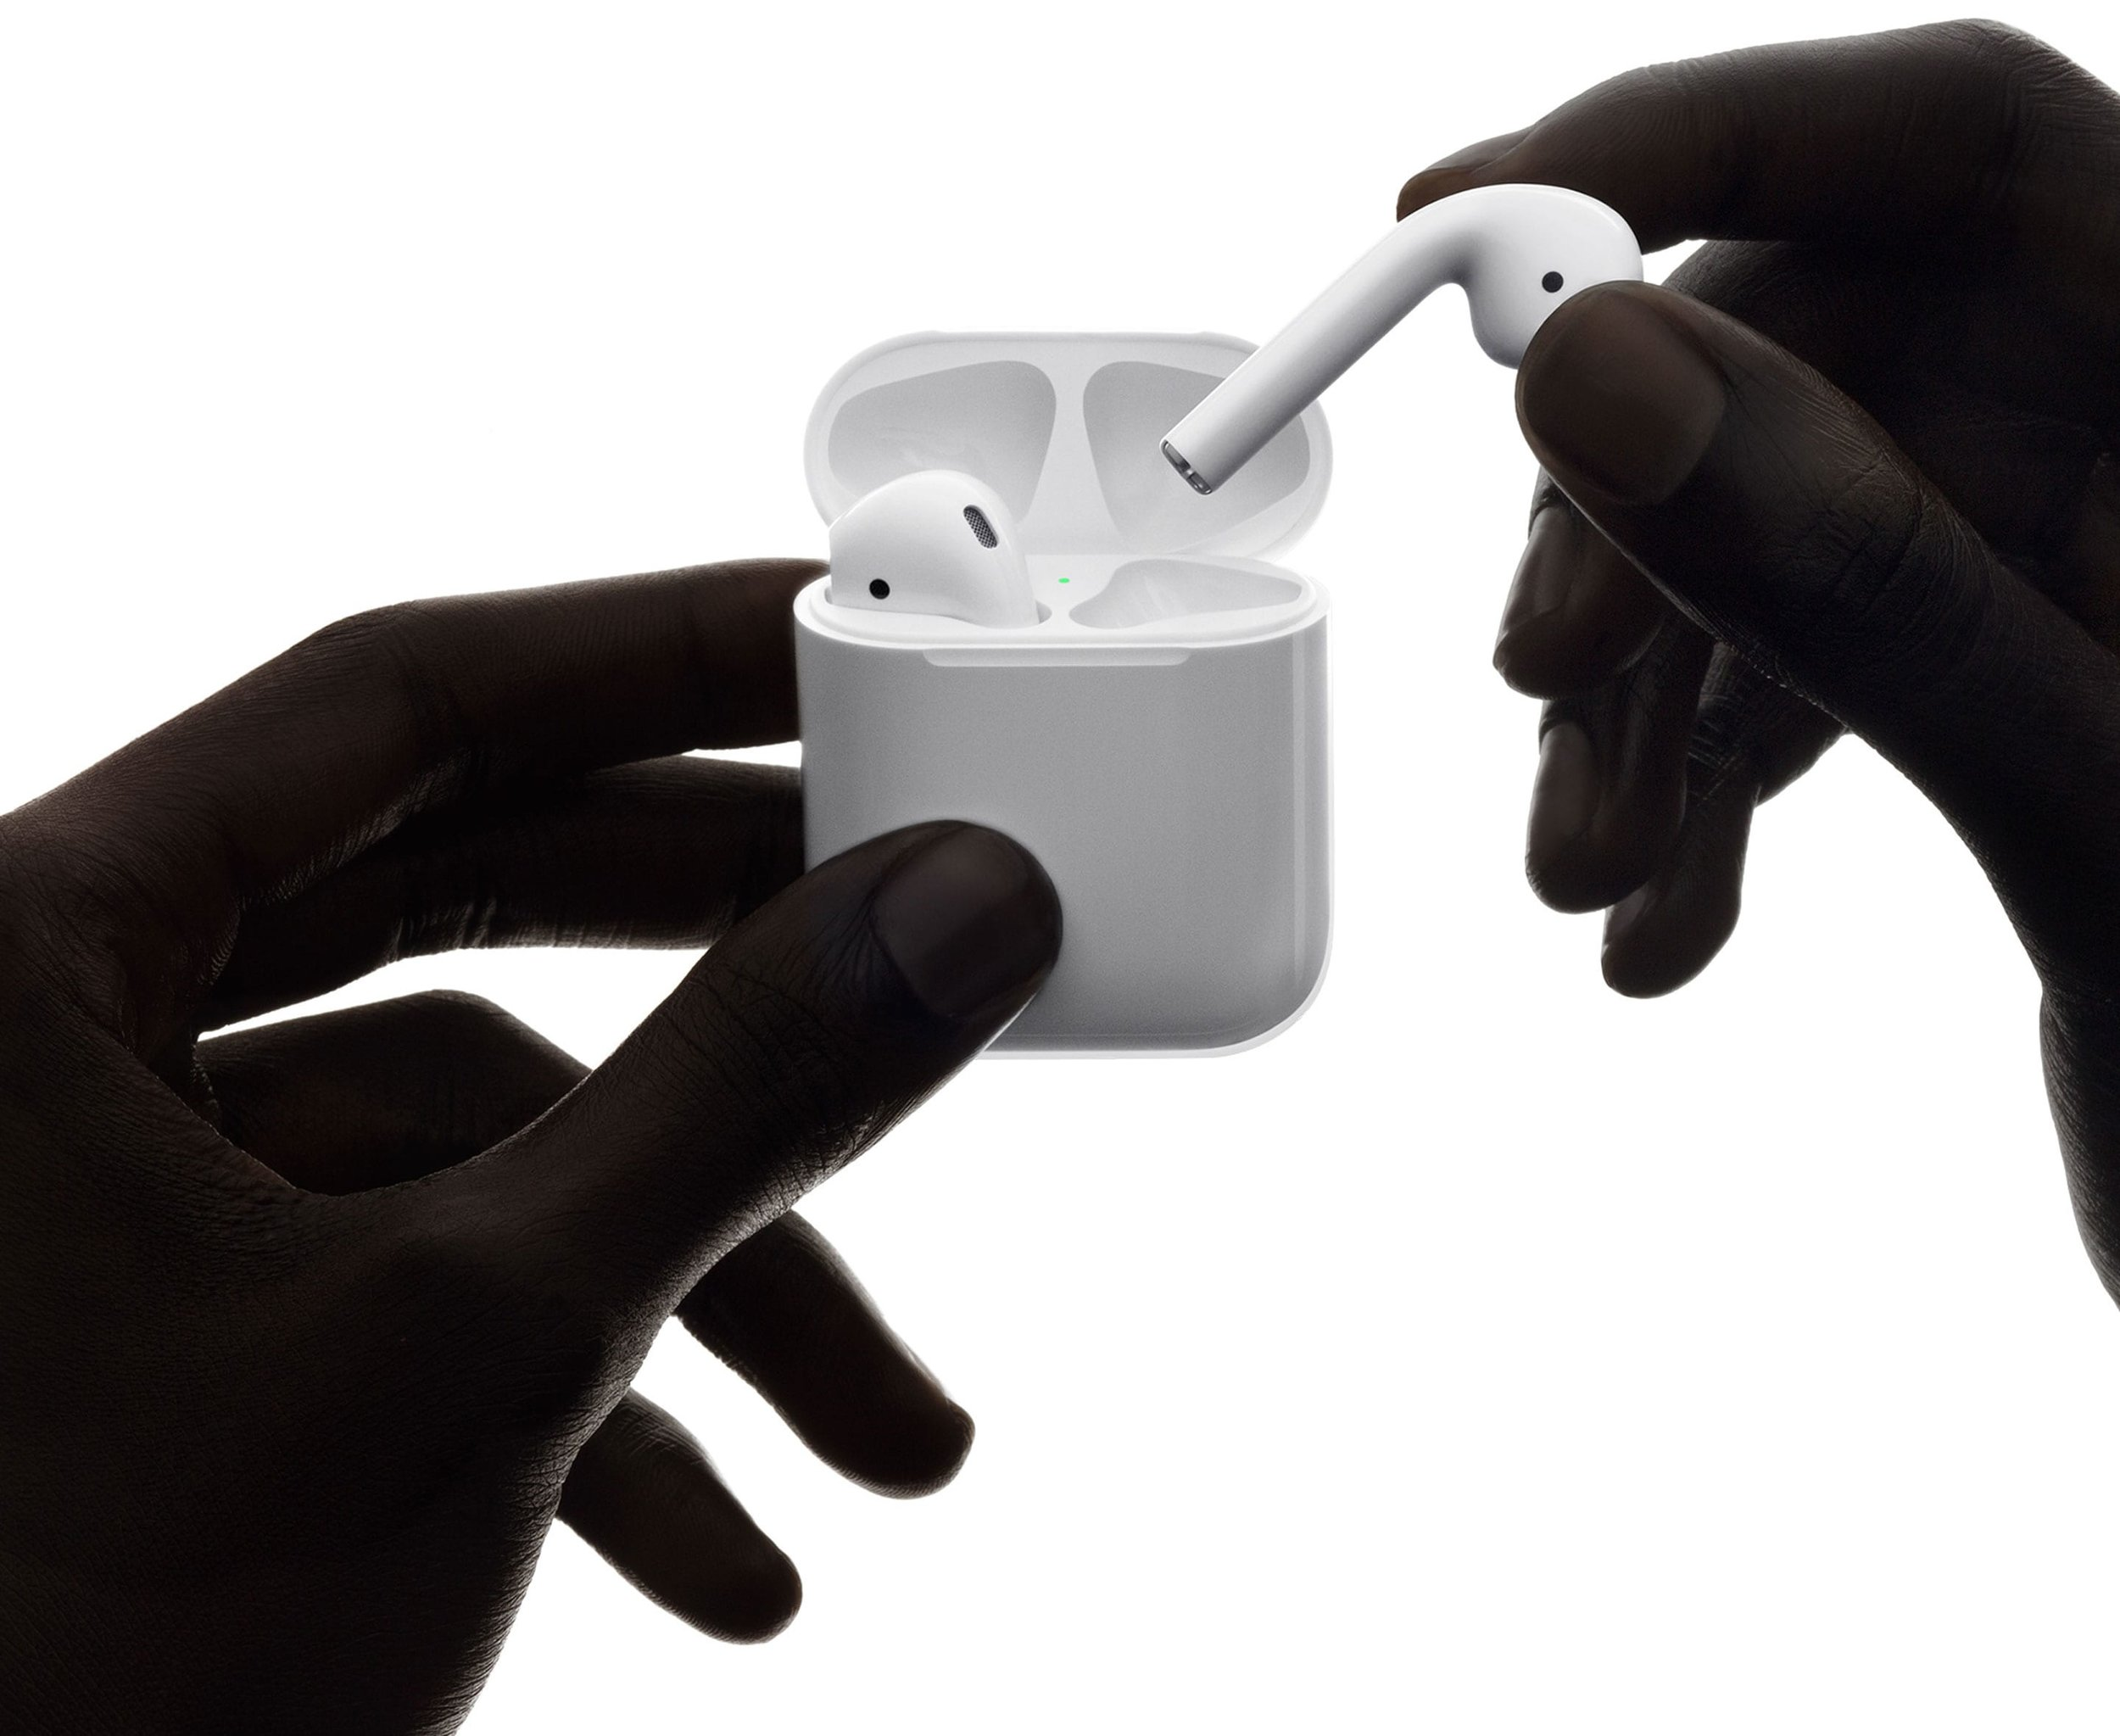 Apple_AirPods-img2a.jpg